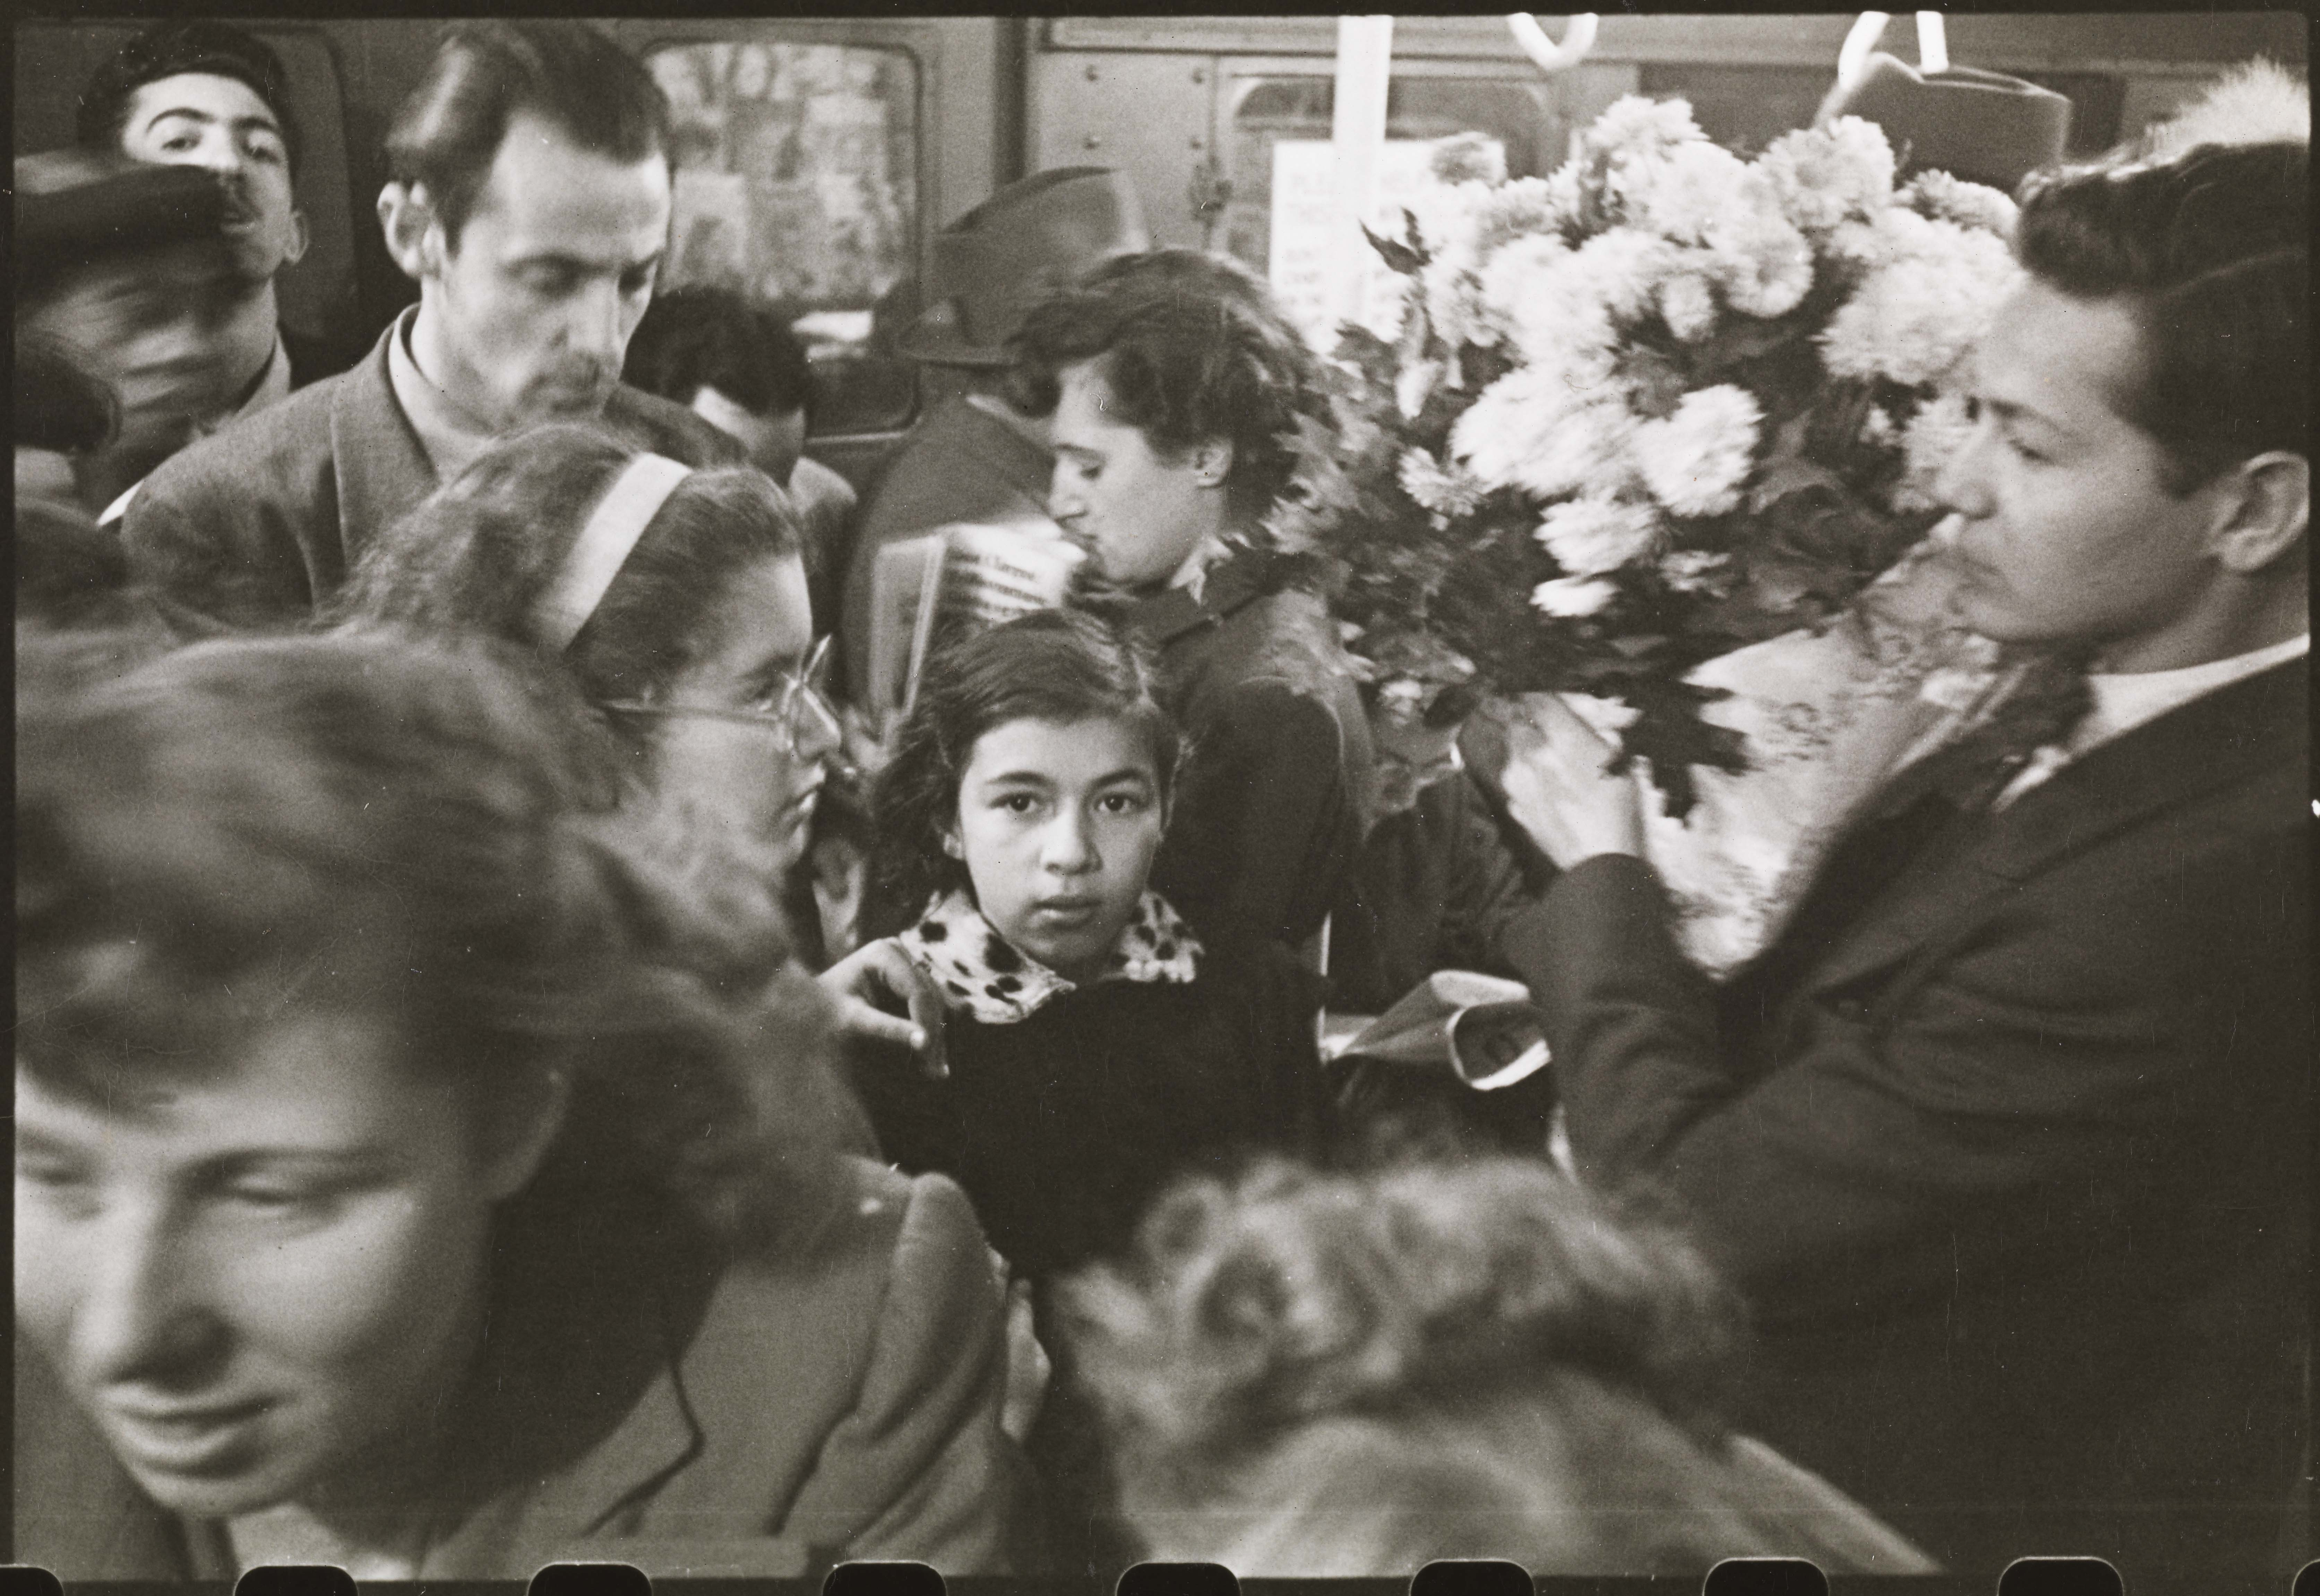 Stanley Kubrick. Life and Love on the New York City Subway. Man carrying flowers on a crowded subway. 1946. Museum of the City of New York. X2011.4.10292.37C